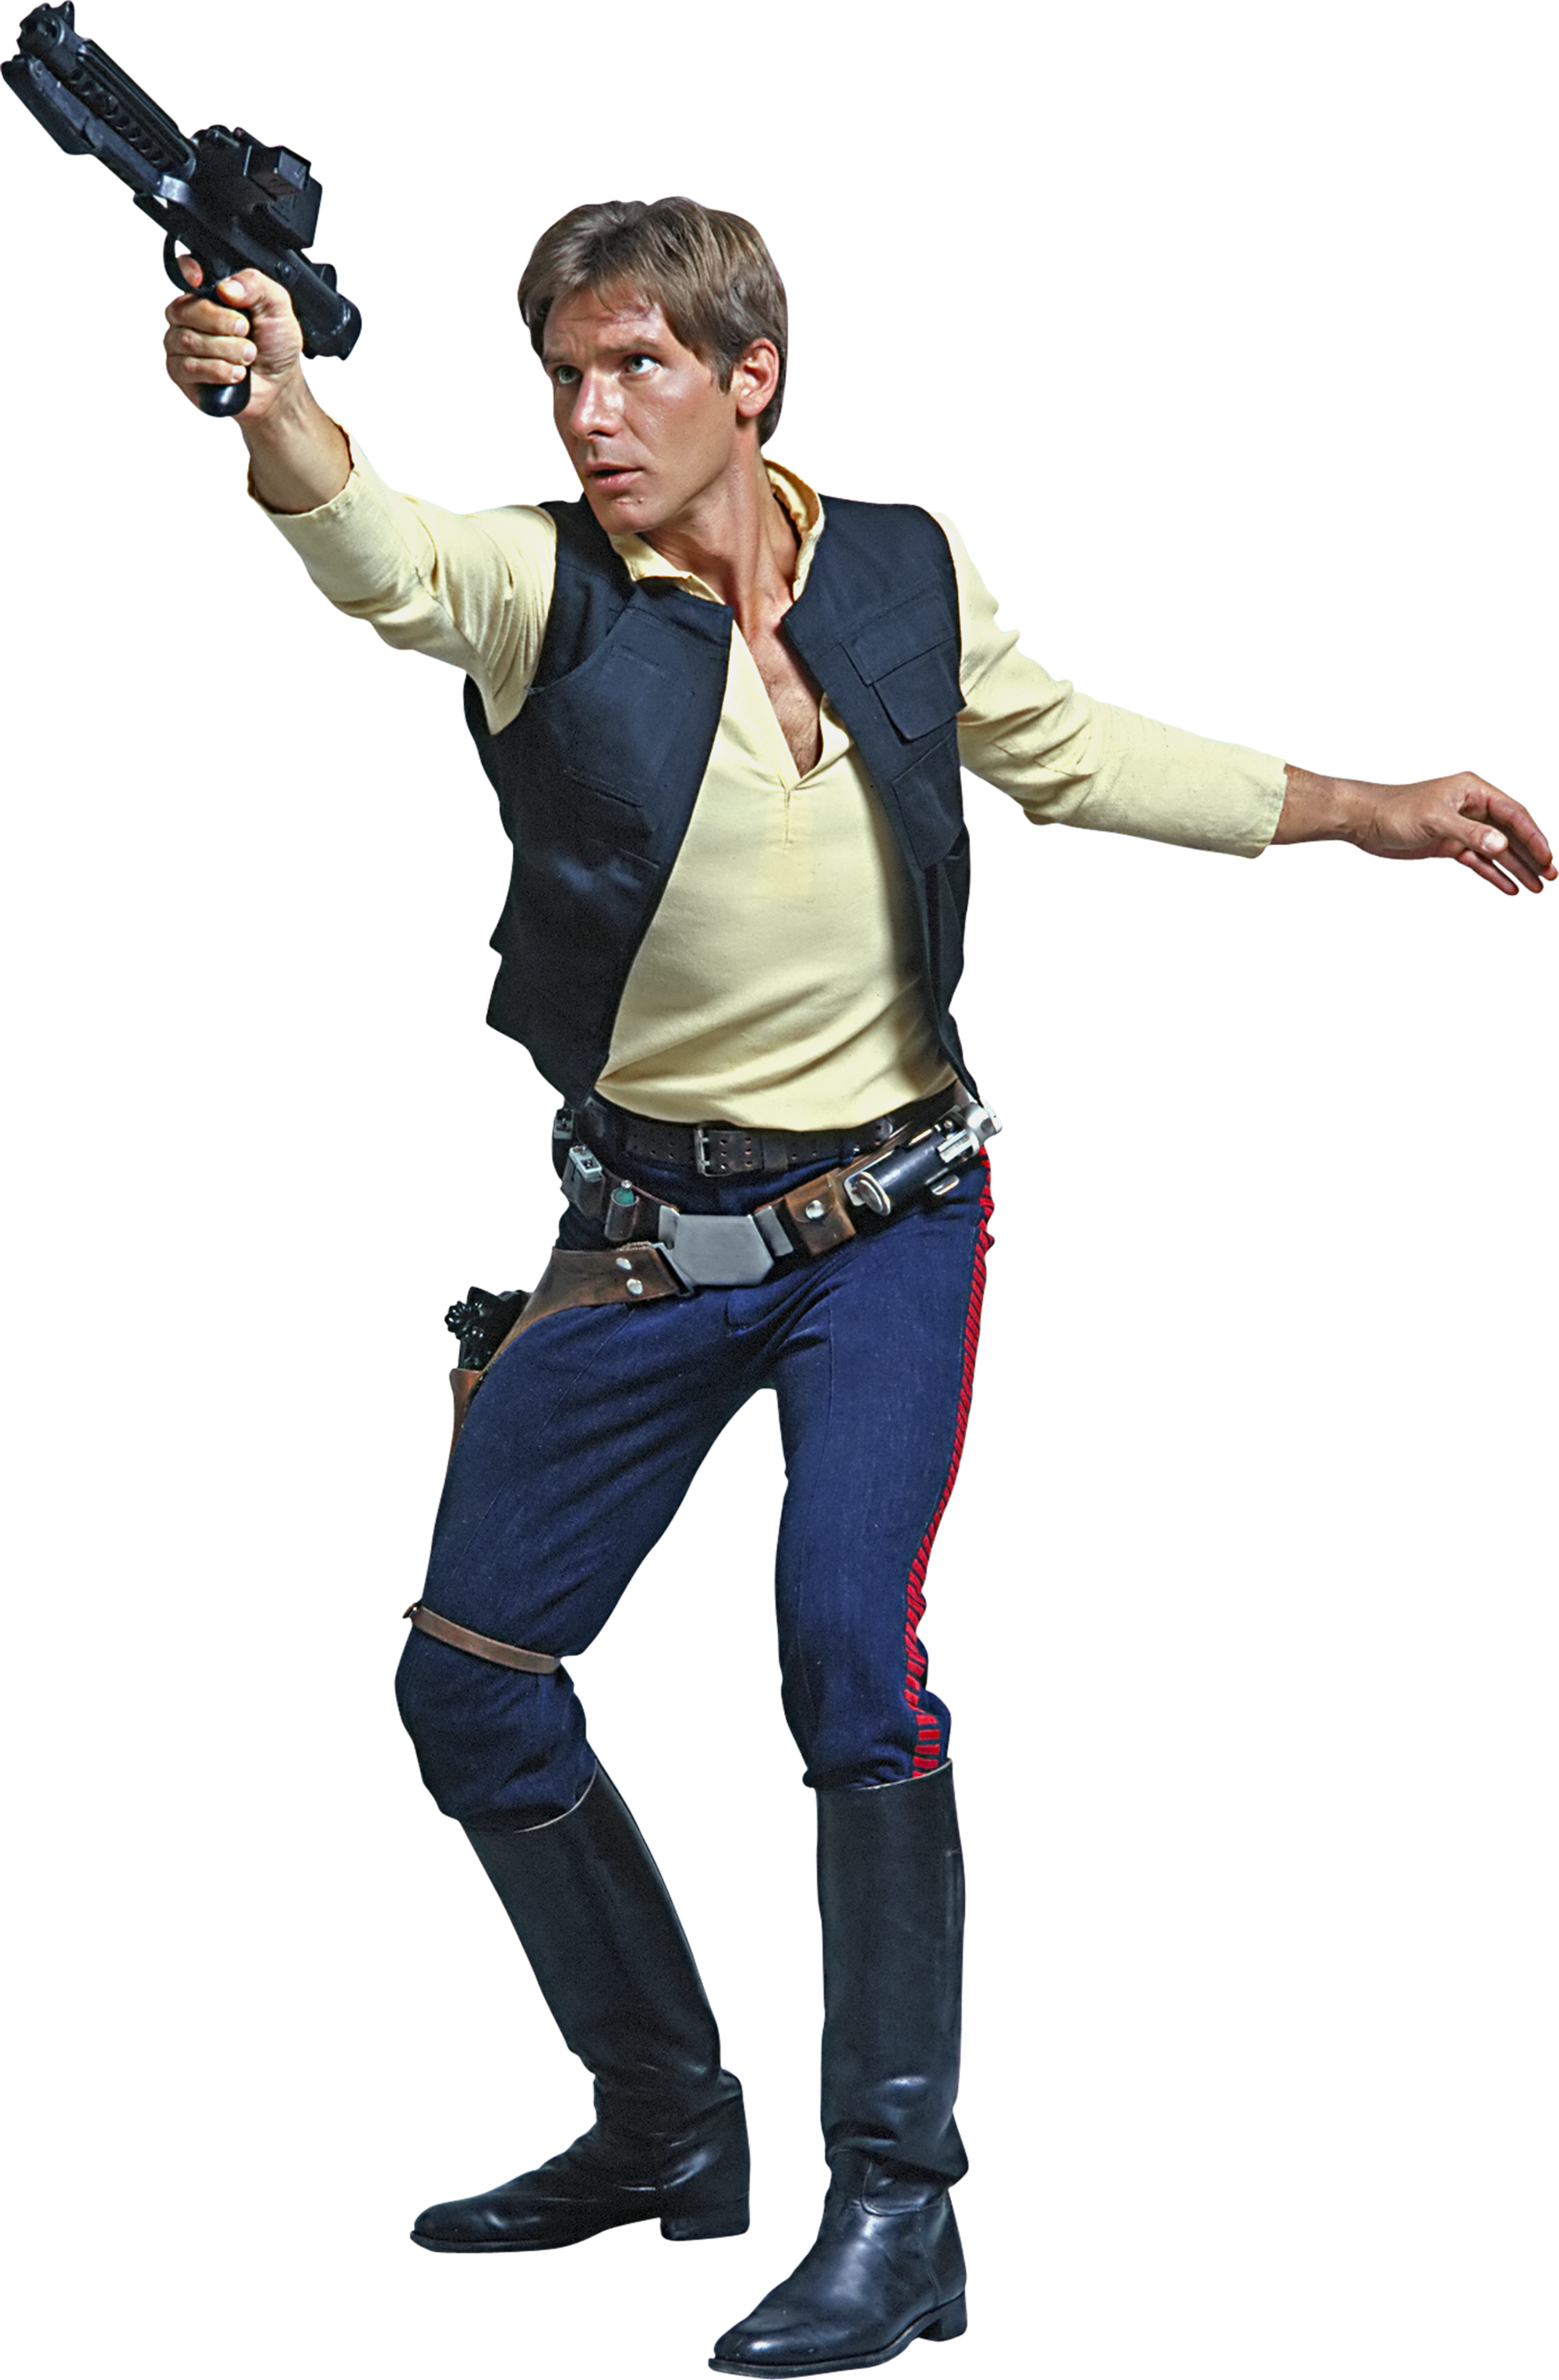 Image   Han Solo Fathead 01.png   Disney Wiki   Fandom Powered By Wikia - Han Solo, Transparent background PNG HD thumbnail